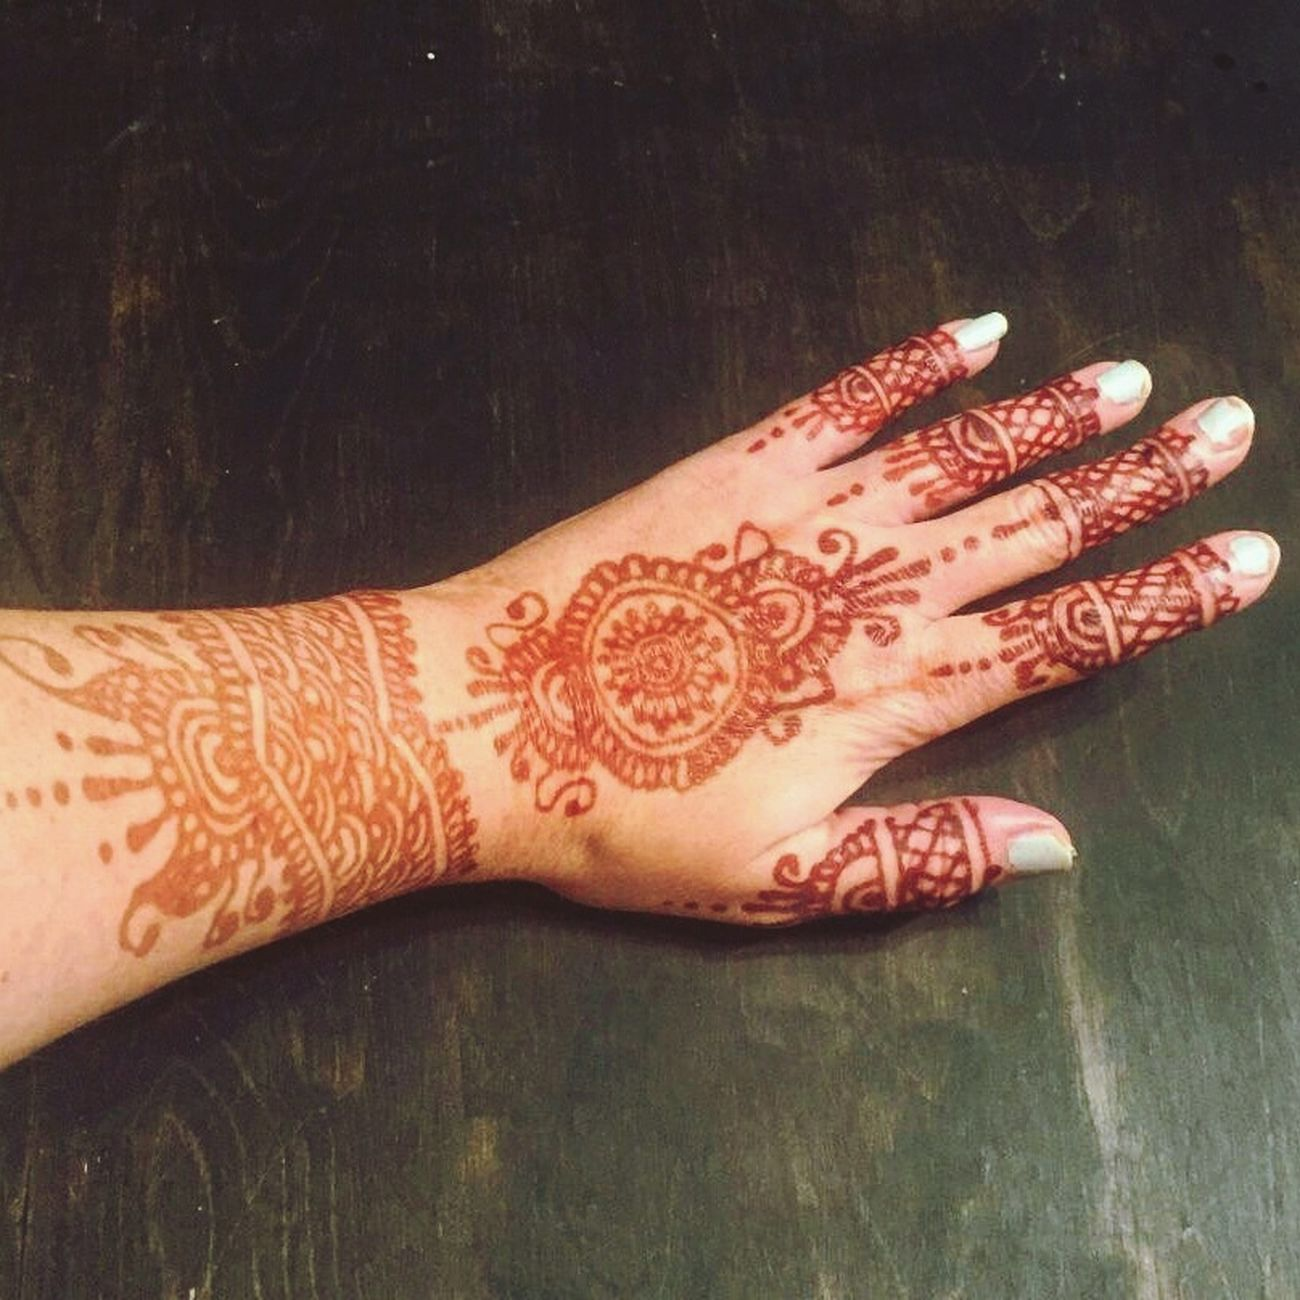 Person Human Body Part Tattoo Cultures Creativity MehndiDesign Design MehndiTattoos Creativity Art And Craft Culture Human Skin Henna Tattoo Arts Culture And Entertainment Human Finger My Work Body Adornment Punjabistyle Punjabiculture Mehndi Lifestyles Happiness